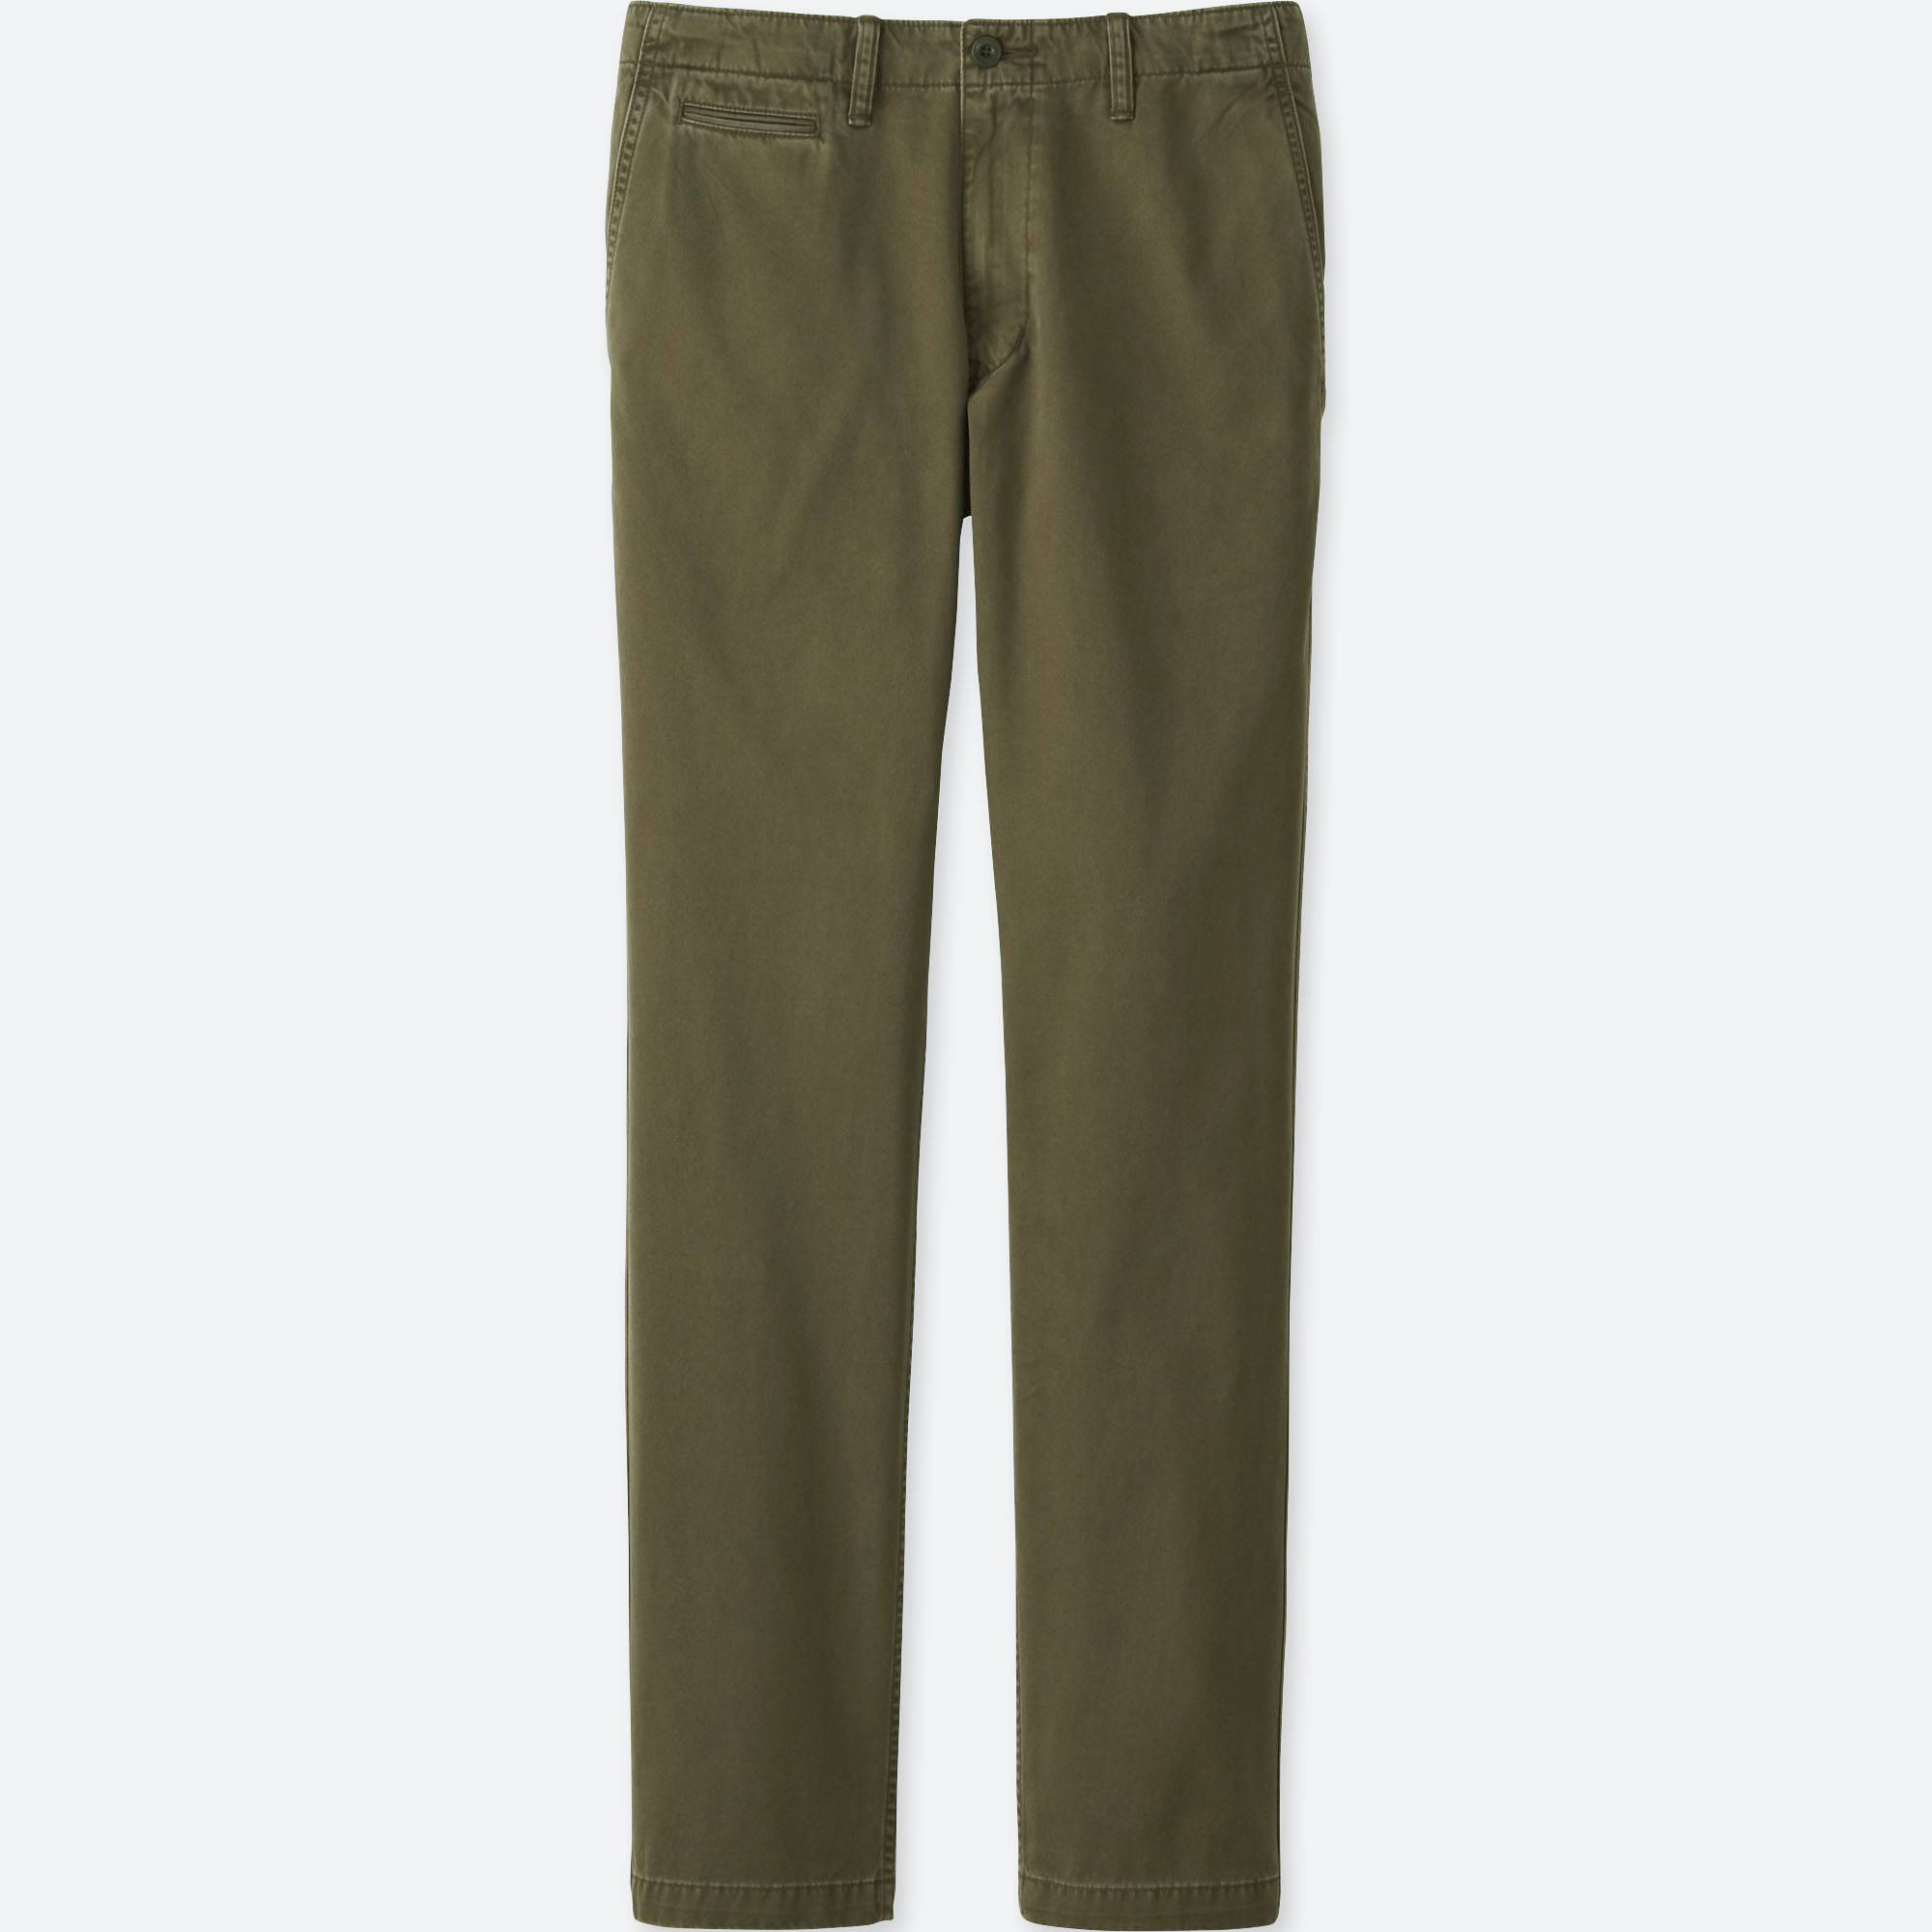 Uniqlo] In-store: Vintage Regular Fit Chino Flat Front Pants ...